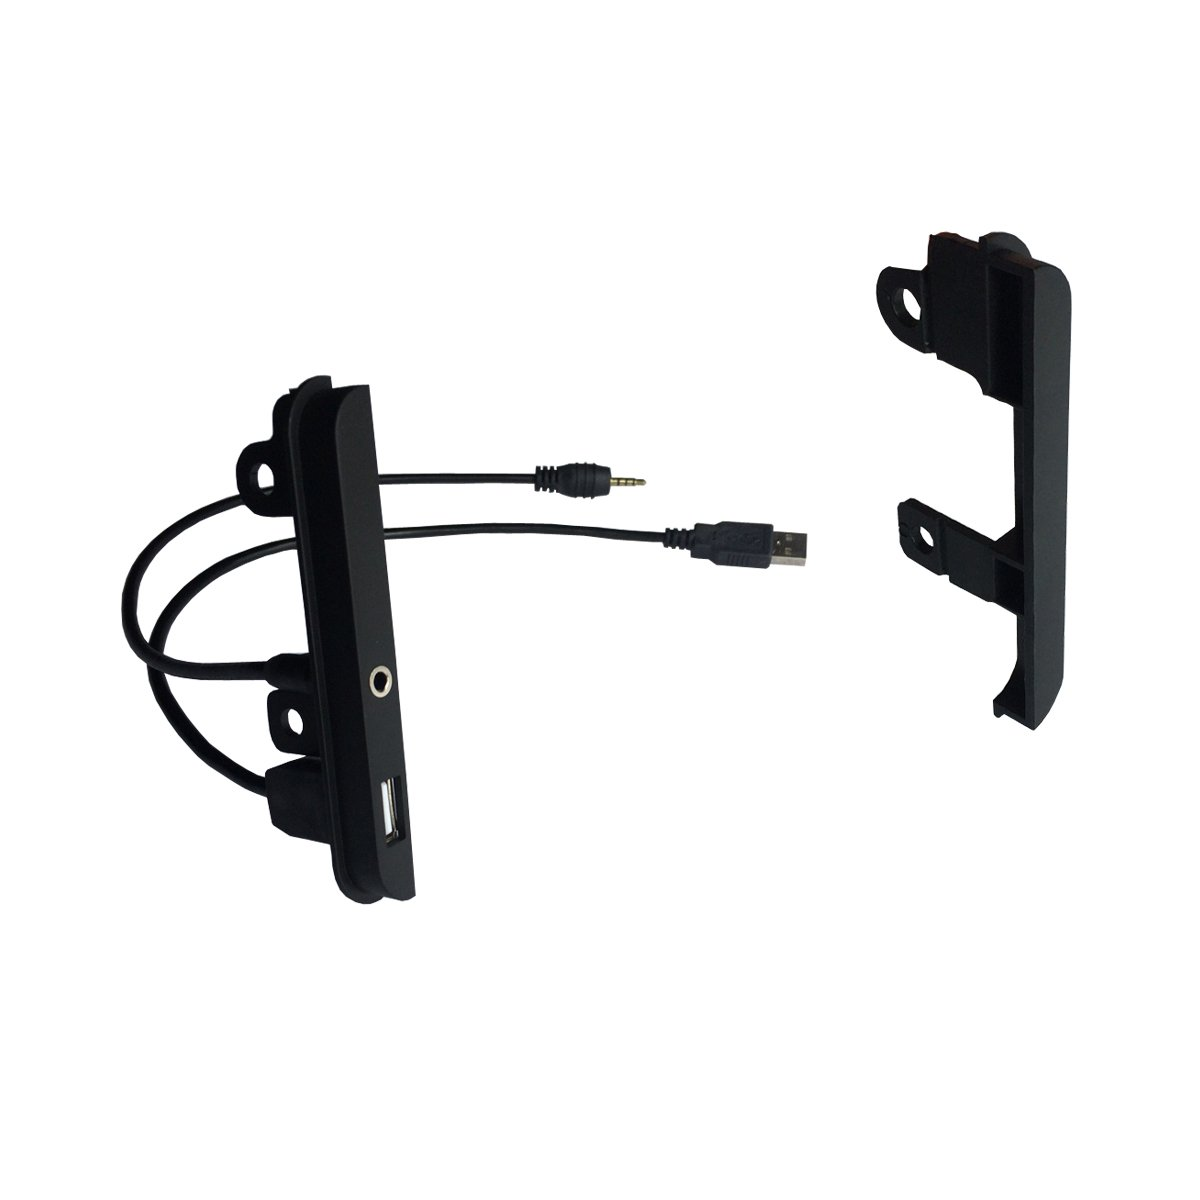 Double Din Navigation Radio Bezel Dash Install Kit With Premium Custom Jeep Wiring Harness And Antenna Adapter